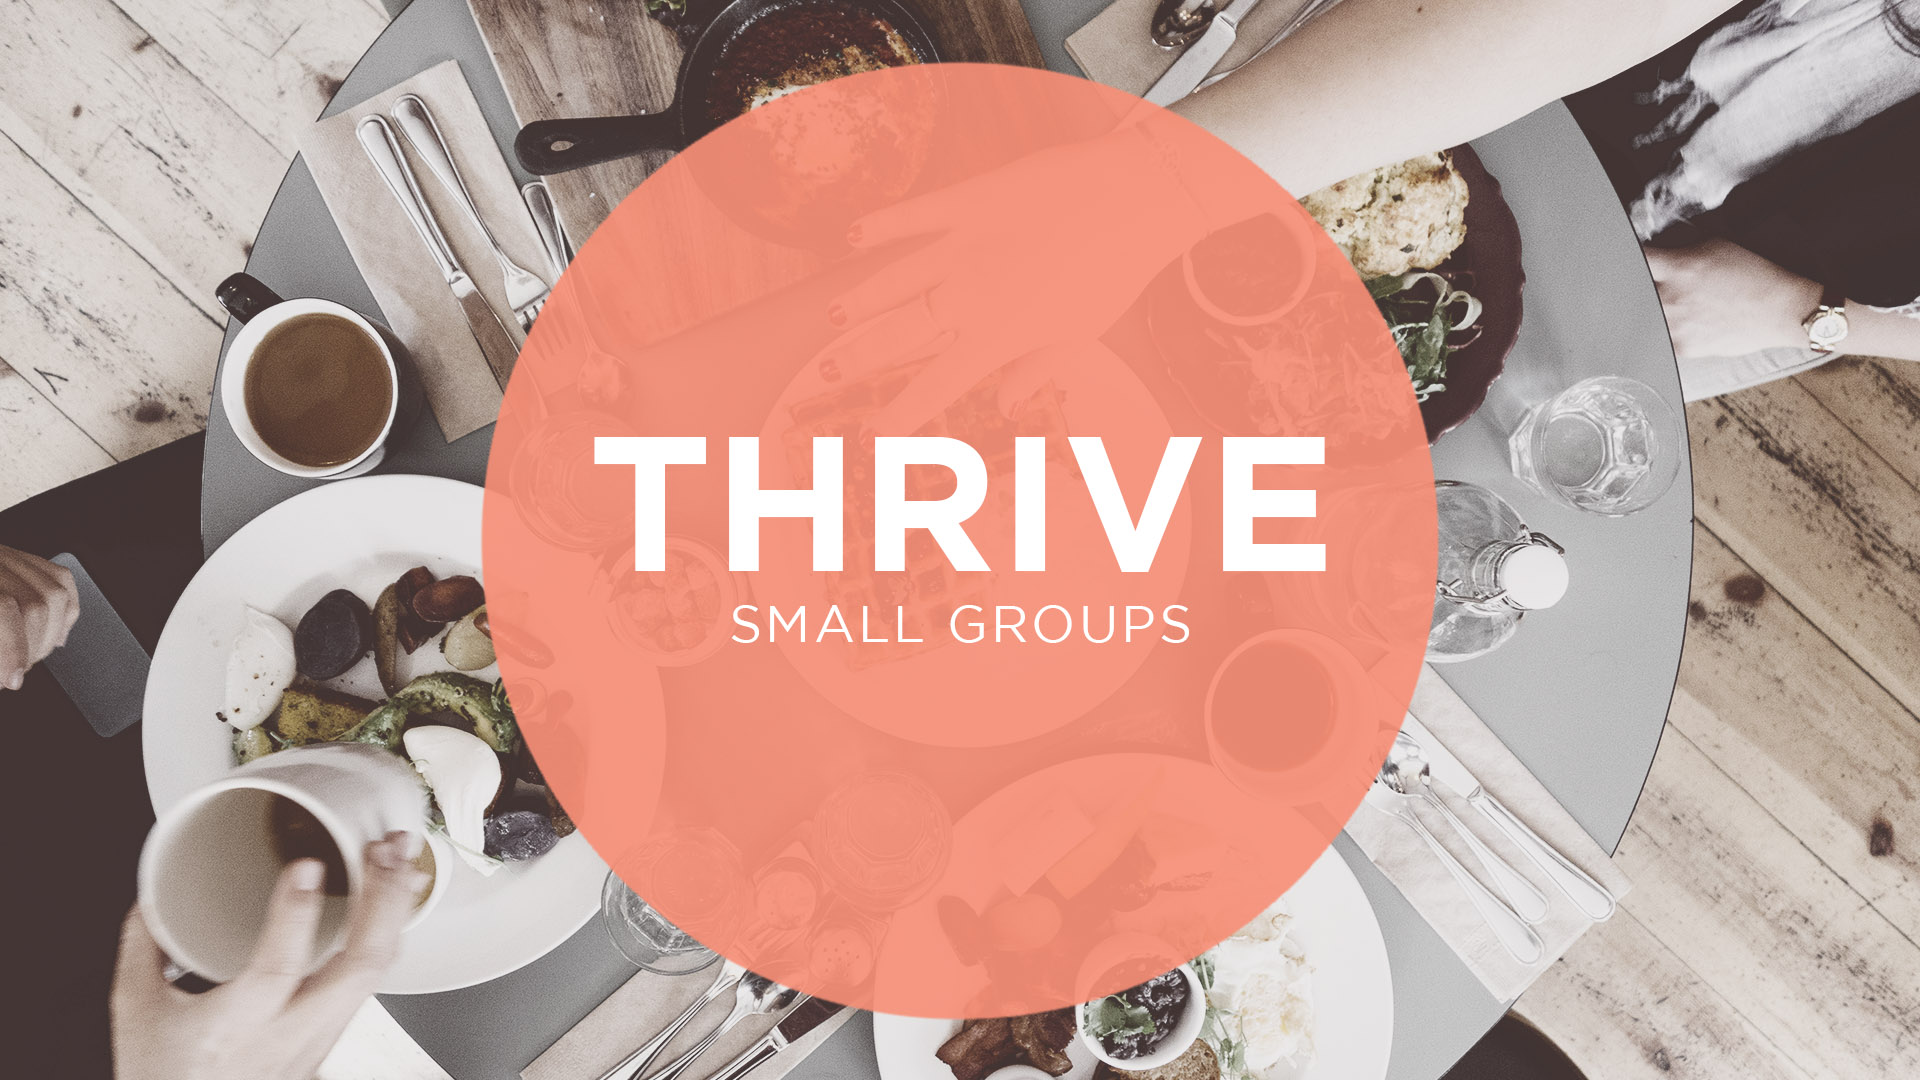 Thrive groups